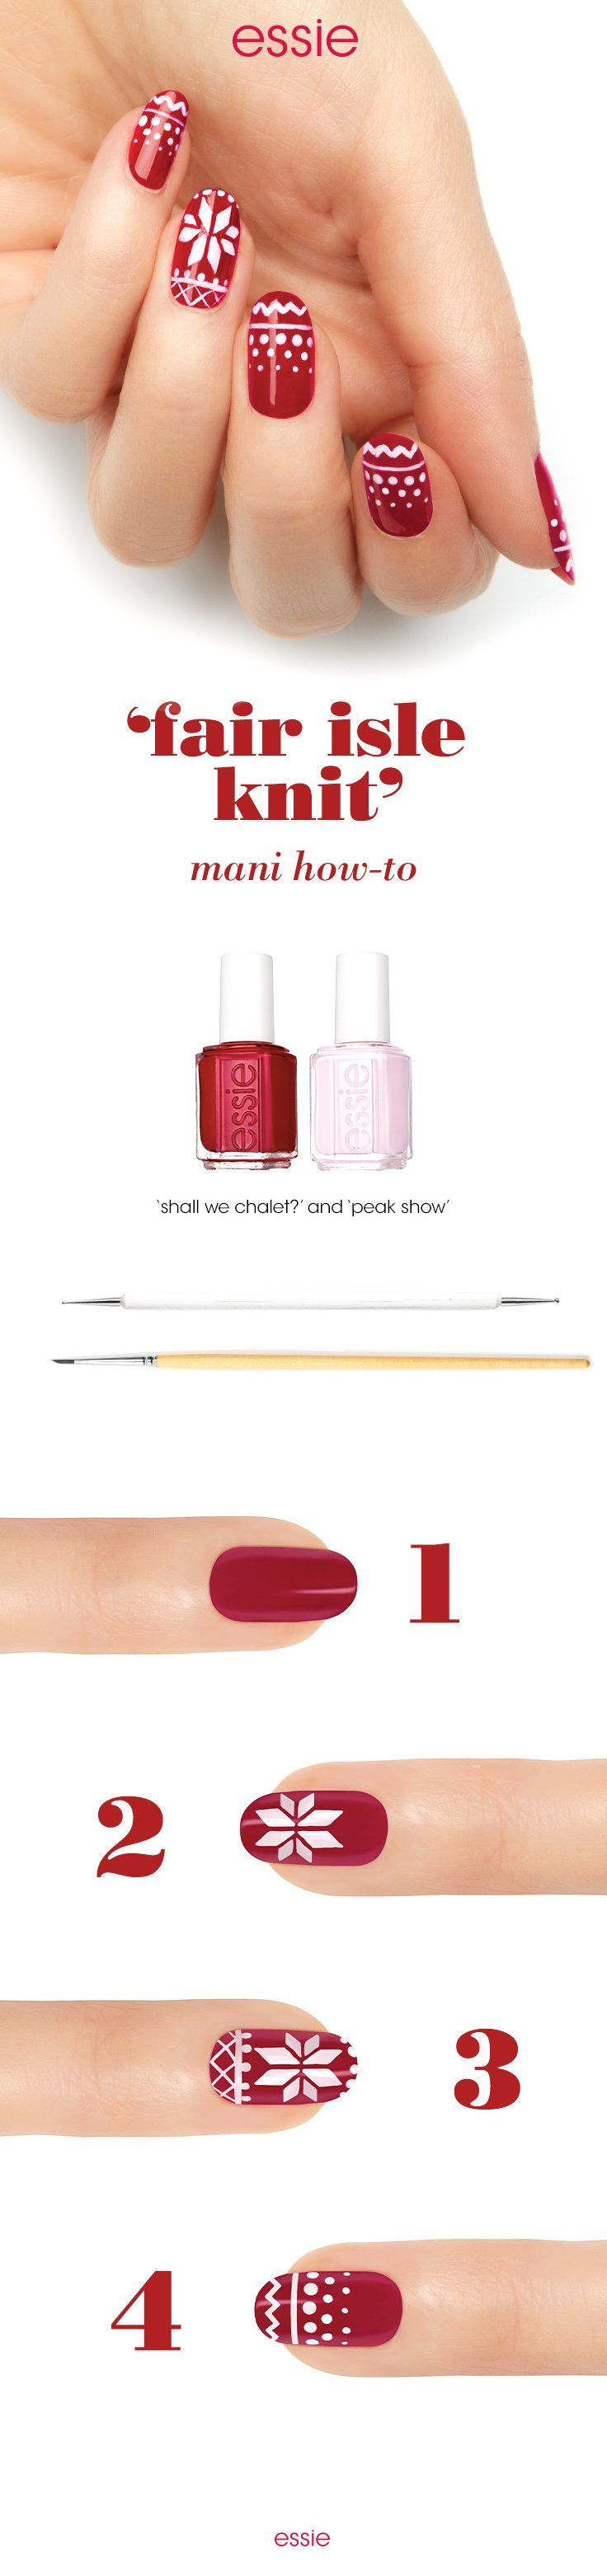 Get into the season with an advanced nail look. Start with essie base coat. Next, apply 2 coats of 'shall we chalet?'. Then, use a striping brush and create a geometric snowflake design in the center of the accent nail using 'peak show'. Follow it up with a knit sweater pattern above and below the snowflake using a dotting tool. Then, create a knit pattern on the other nails with 'peak show' using both the tools. Voila! Your sweater weather mani is ready in all its winter glory.